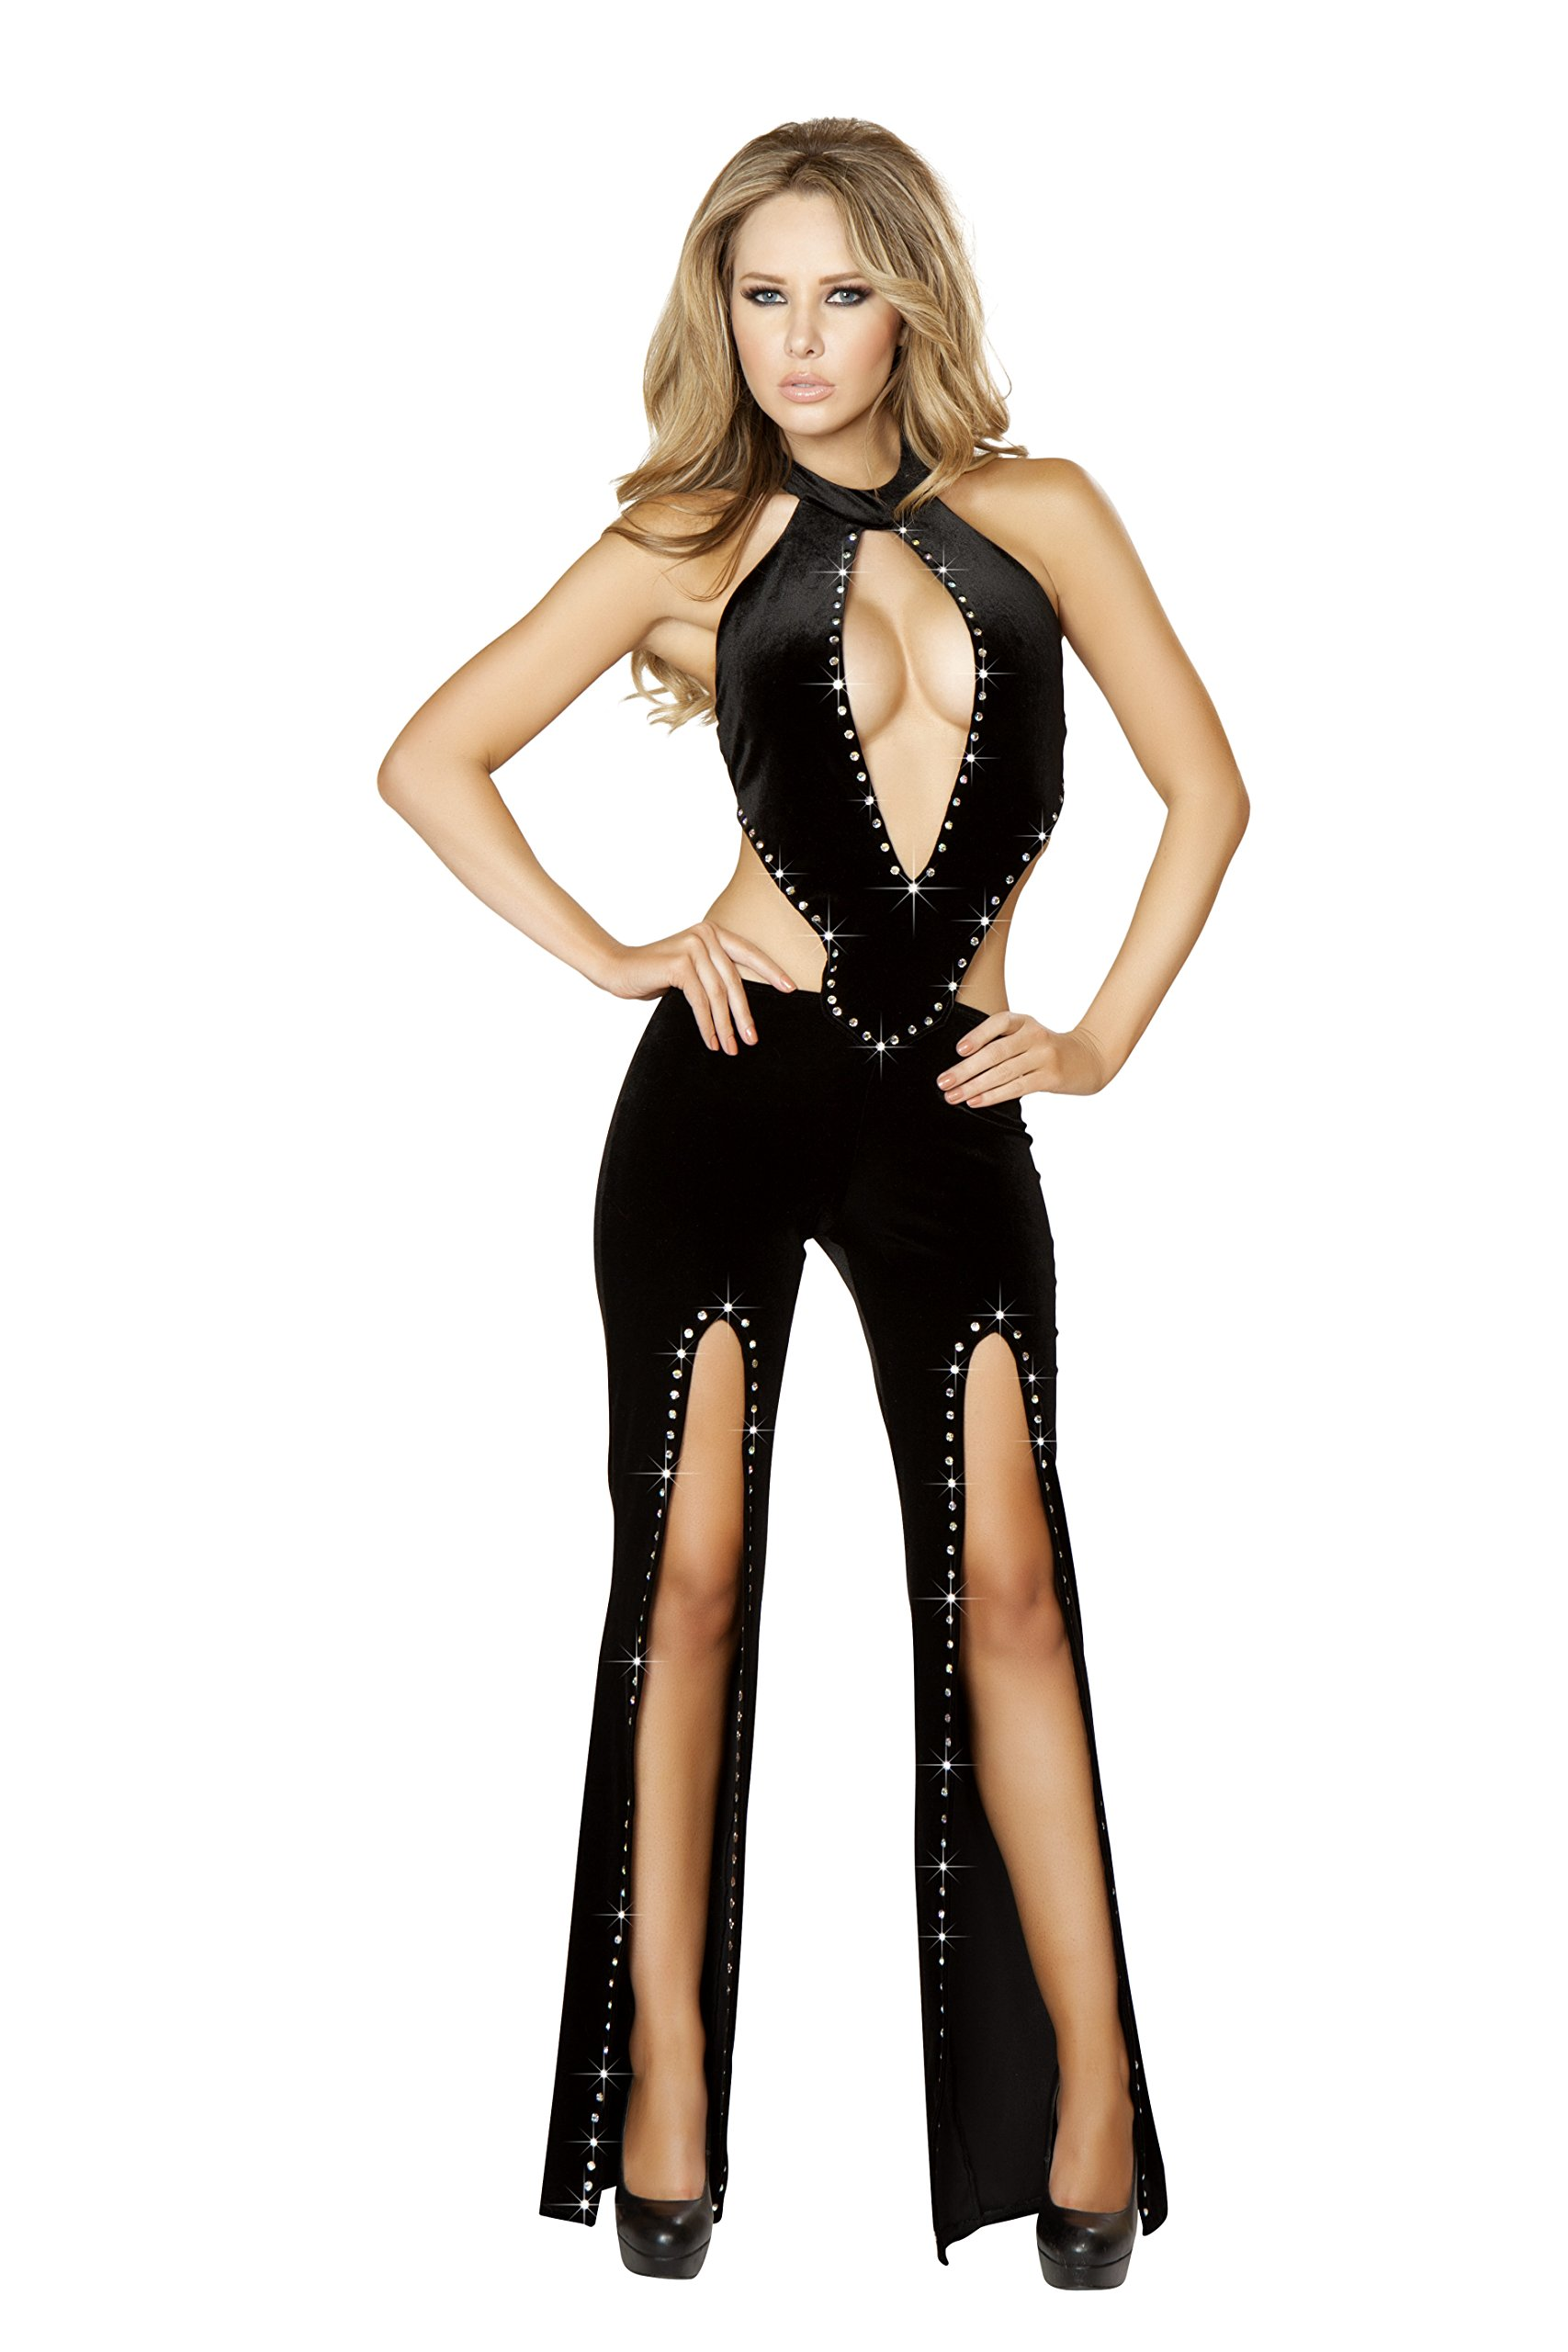 Roma Women's Velvet Cropped Jumpsuit with Slit Legs and Rhinestone Detail, Black, Small